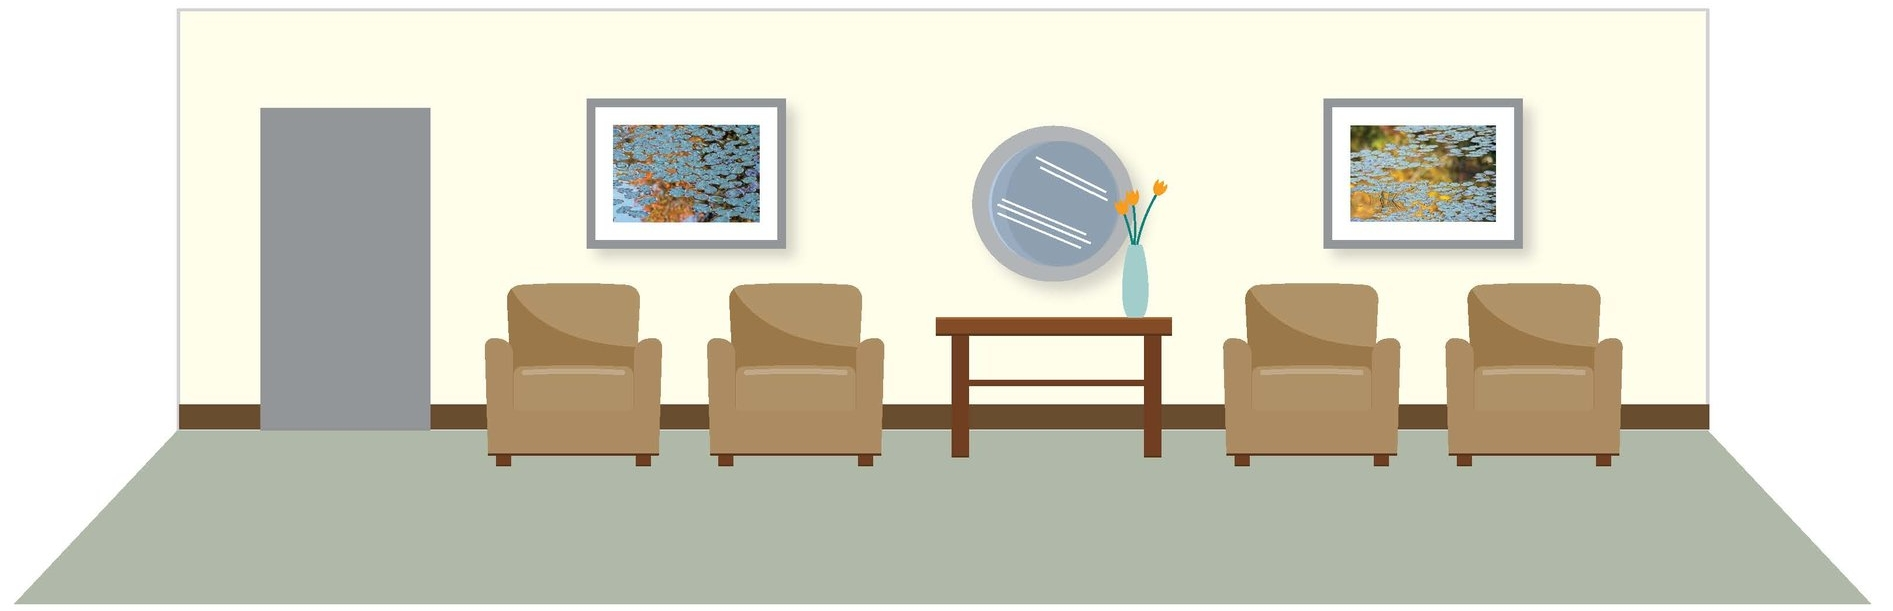 WRNMMC_Nutrition Offices_Artwork Concepts_Page_14.jpg